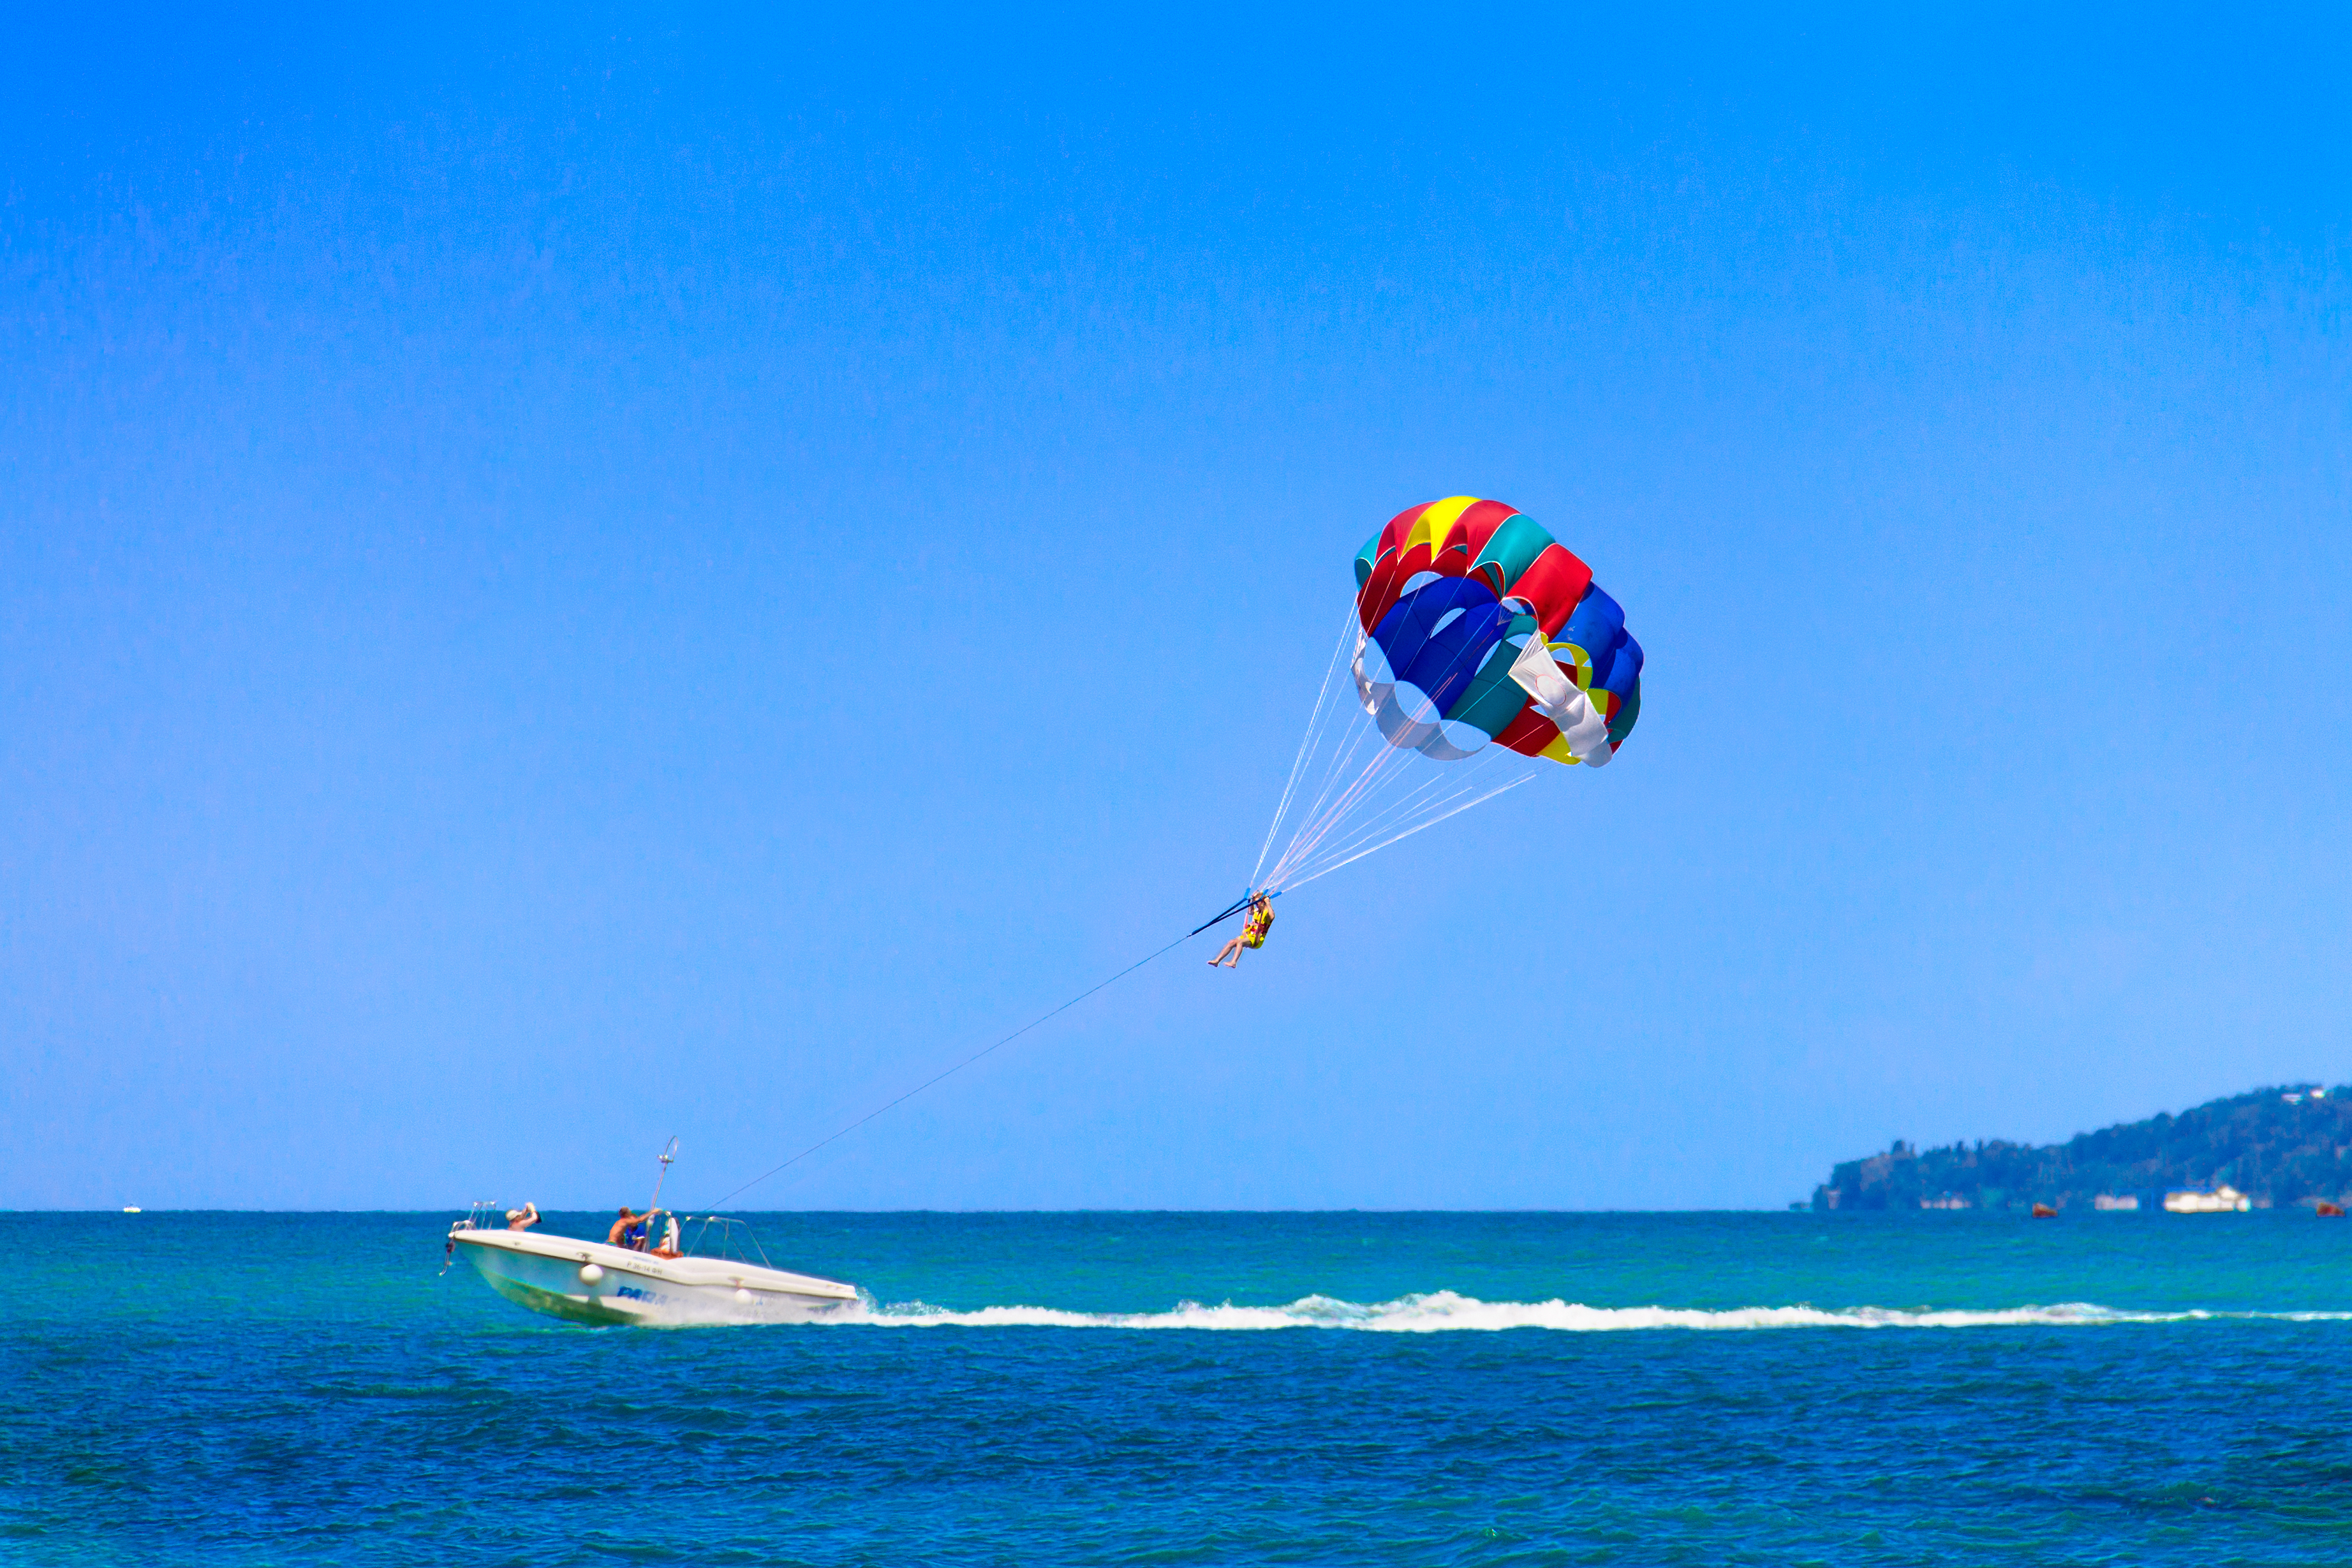 3D2N Boracay Package with Airfare   Discovery Shores Resort from Manila - day 2